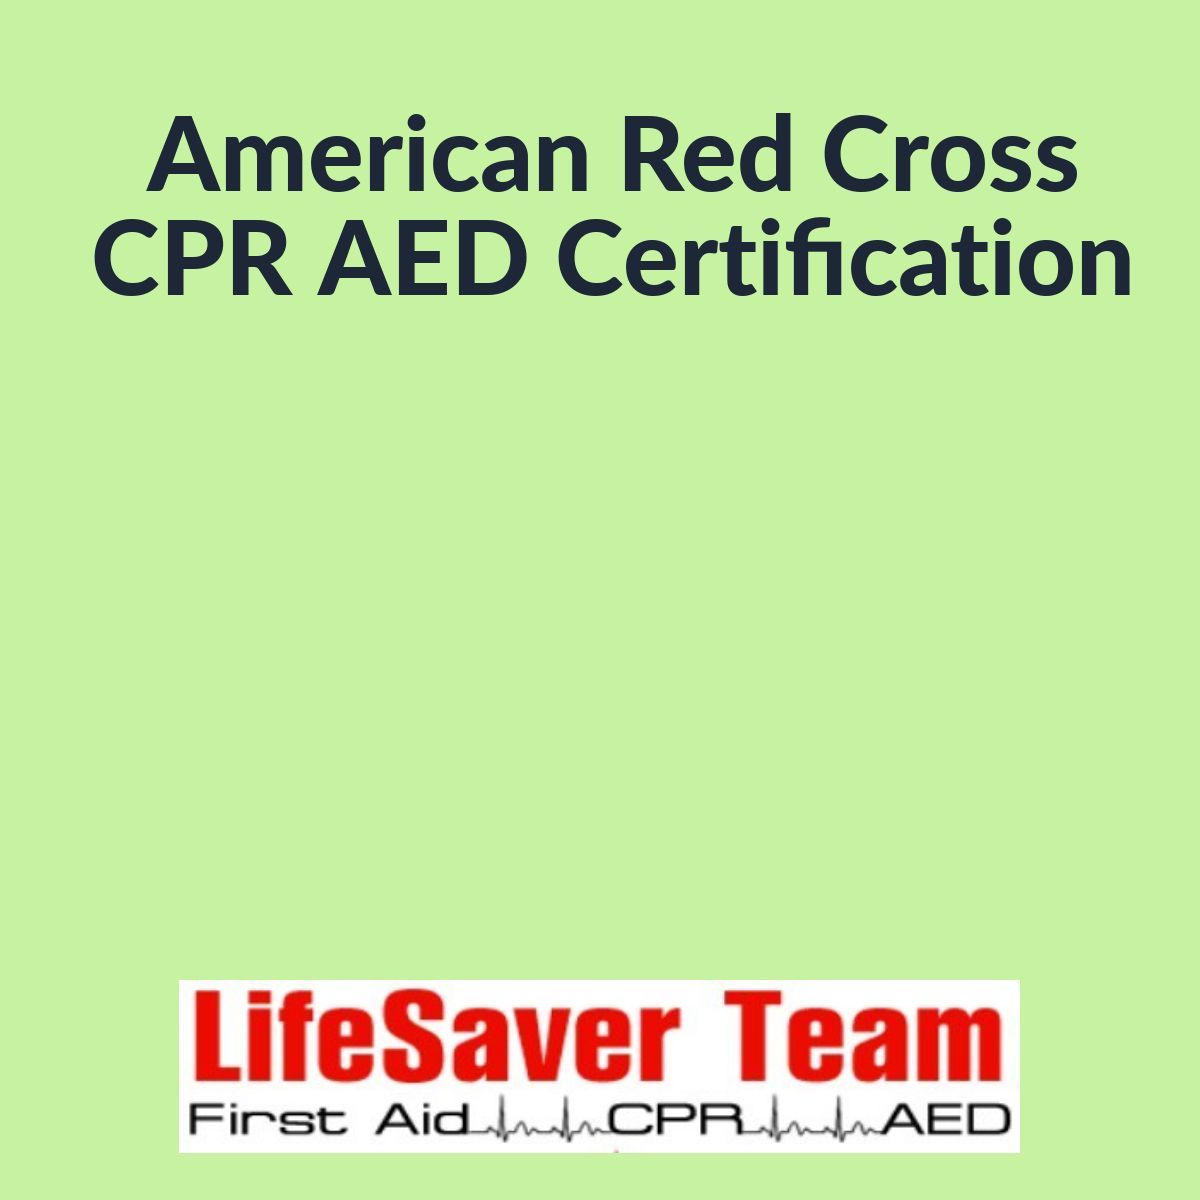 Pin By LifeSaver Team On CPR AED